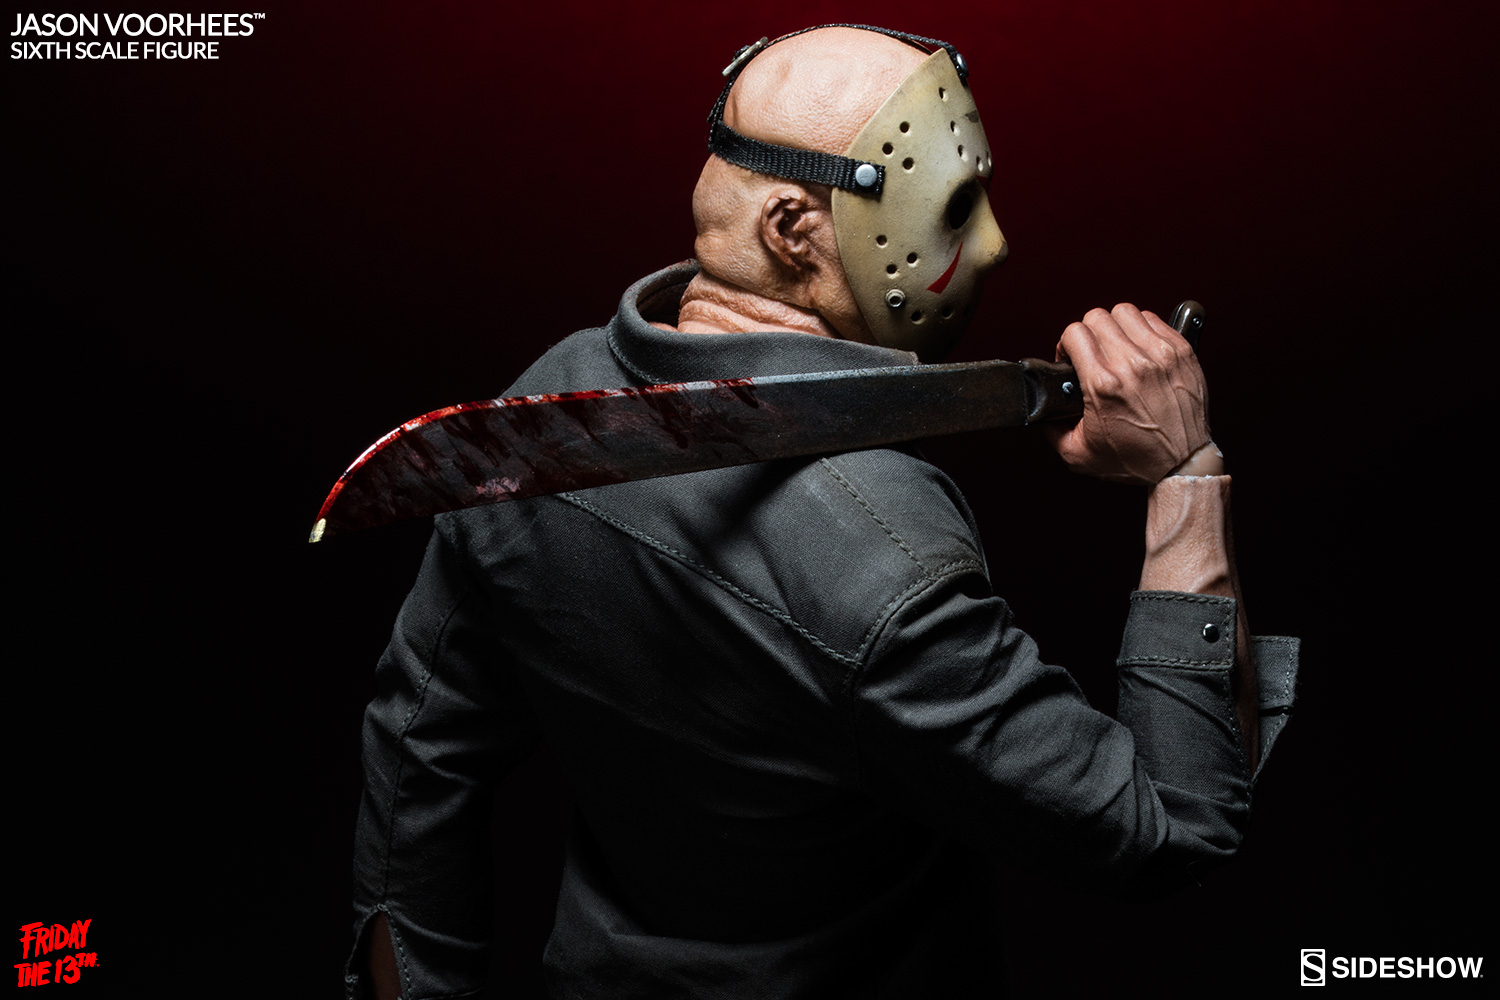 friday the 13th jason voorhees sixthscale figure